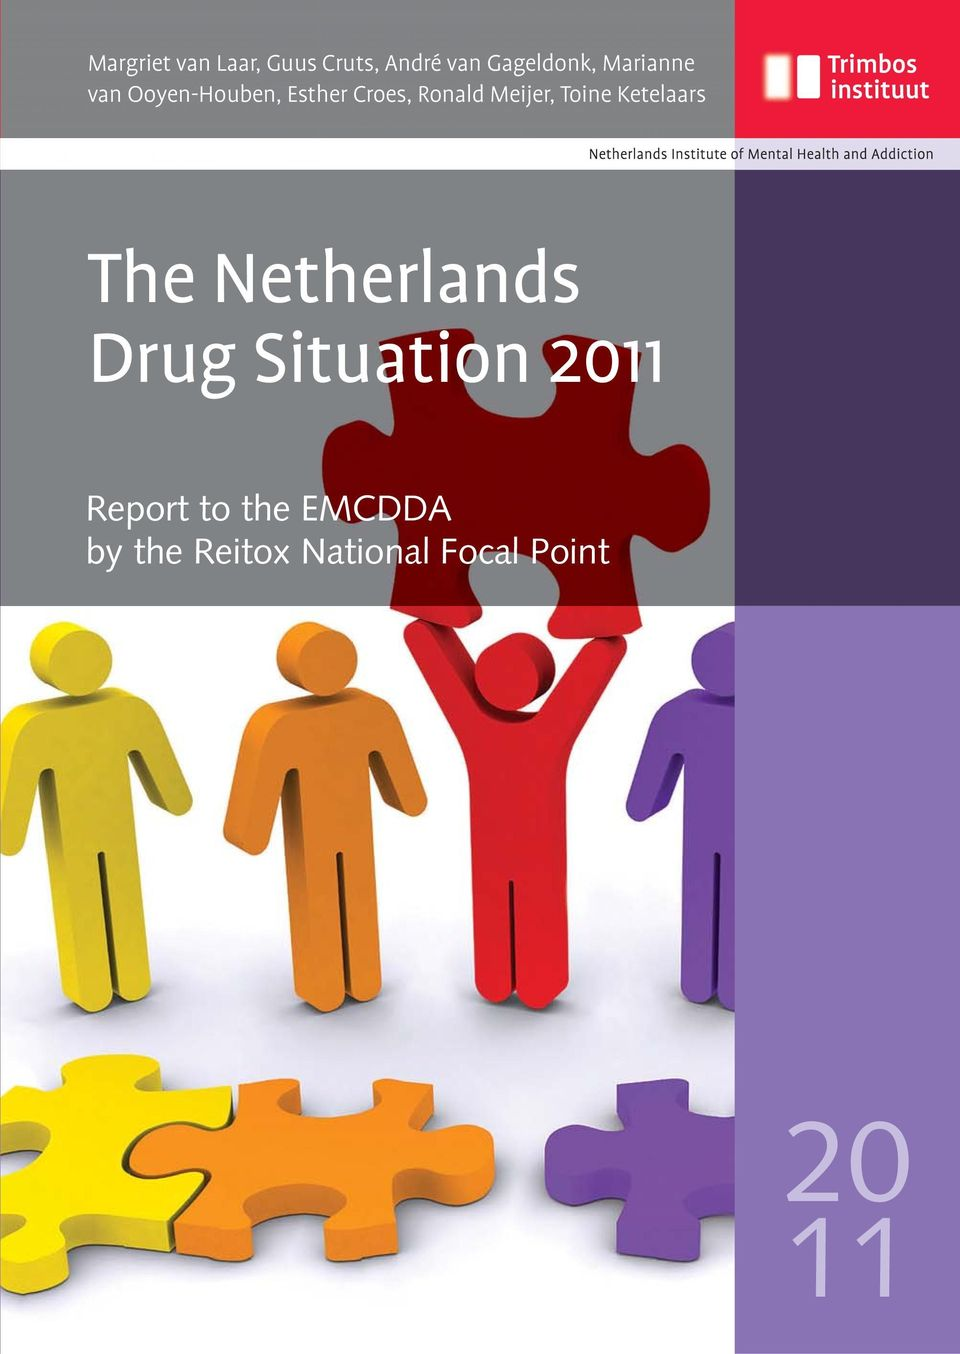 Toine Ketelaars The Netherlands Drug Situation 2011